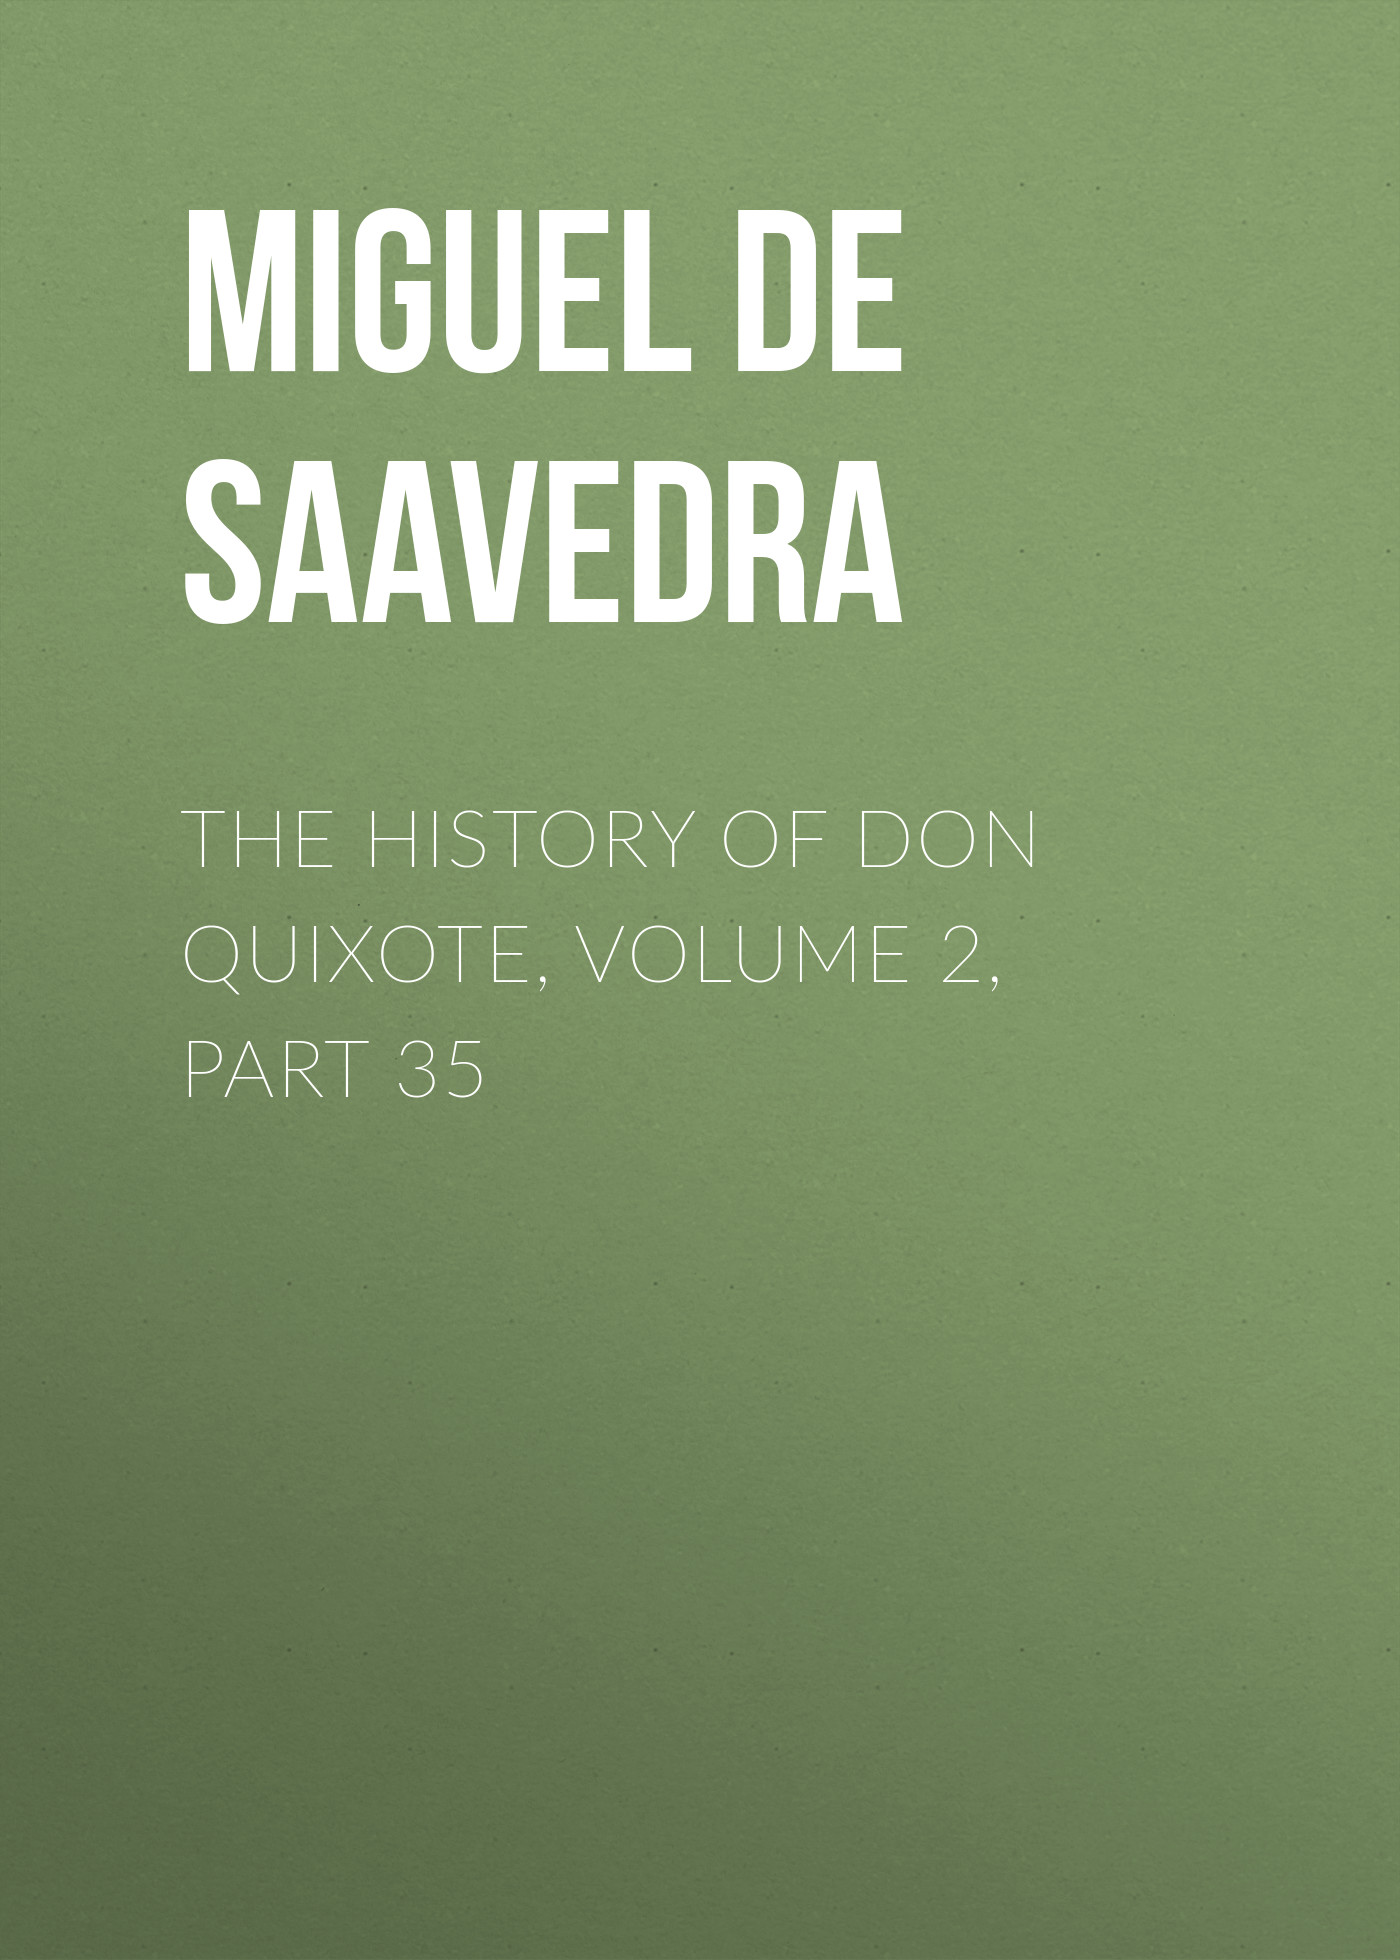 the history of don quixote volume 2 part 35